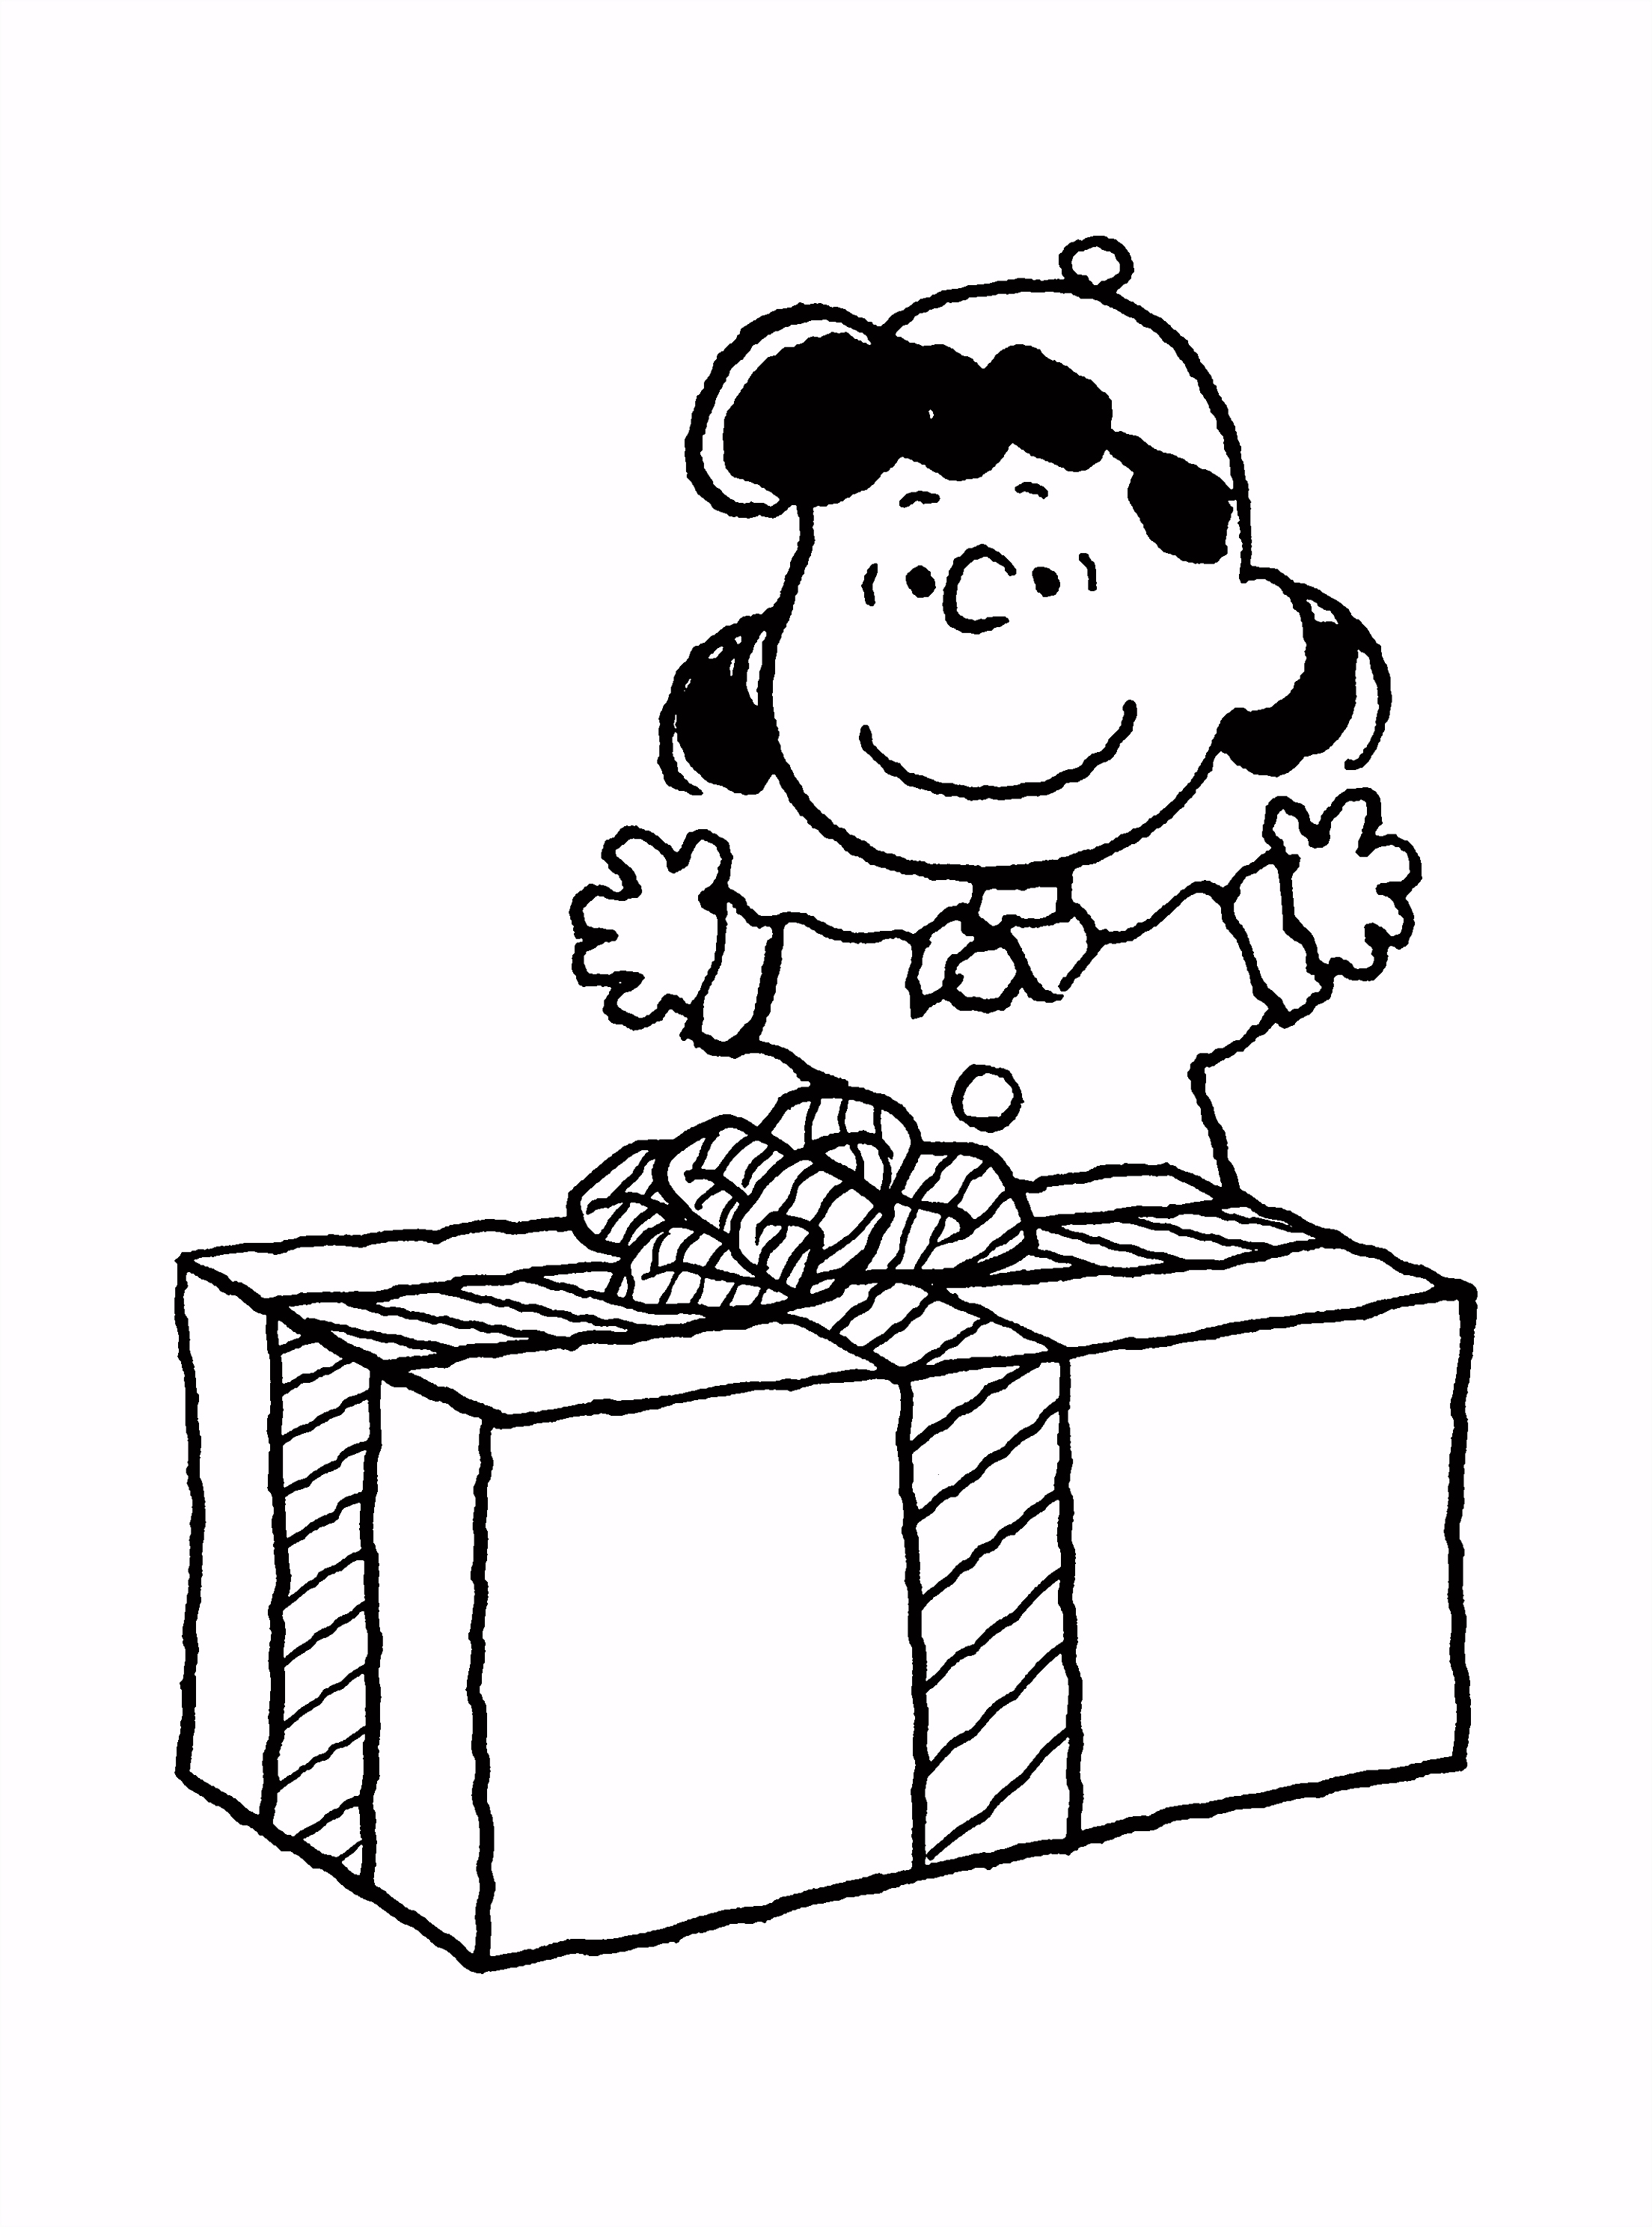 Peanuts Xmas Coloring and Activity Book Charlie Brown